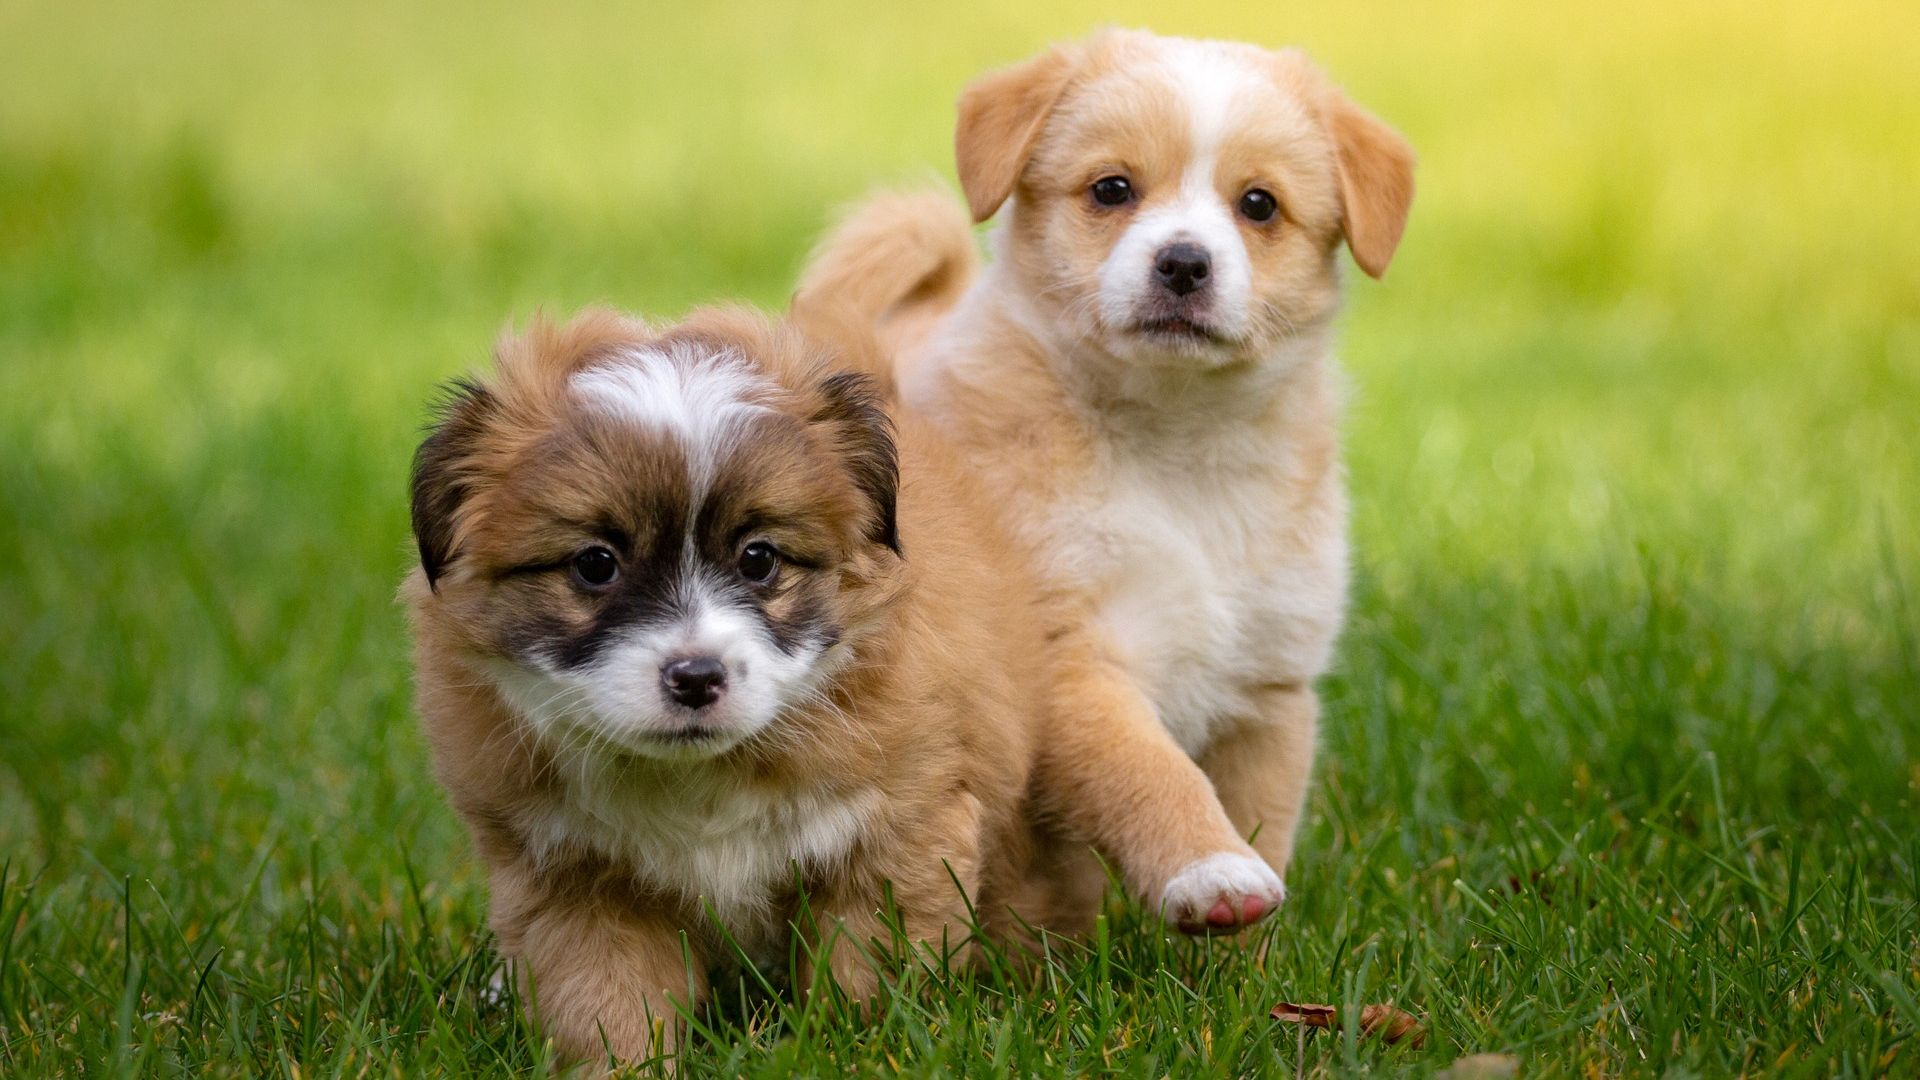 Cute Two Puppies Wallpaper HD   Wallpaper Stream 1920x1080